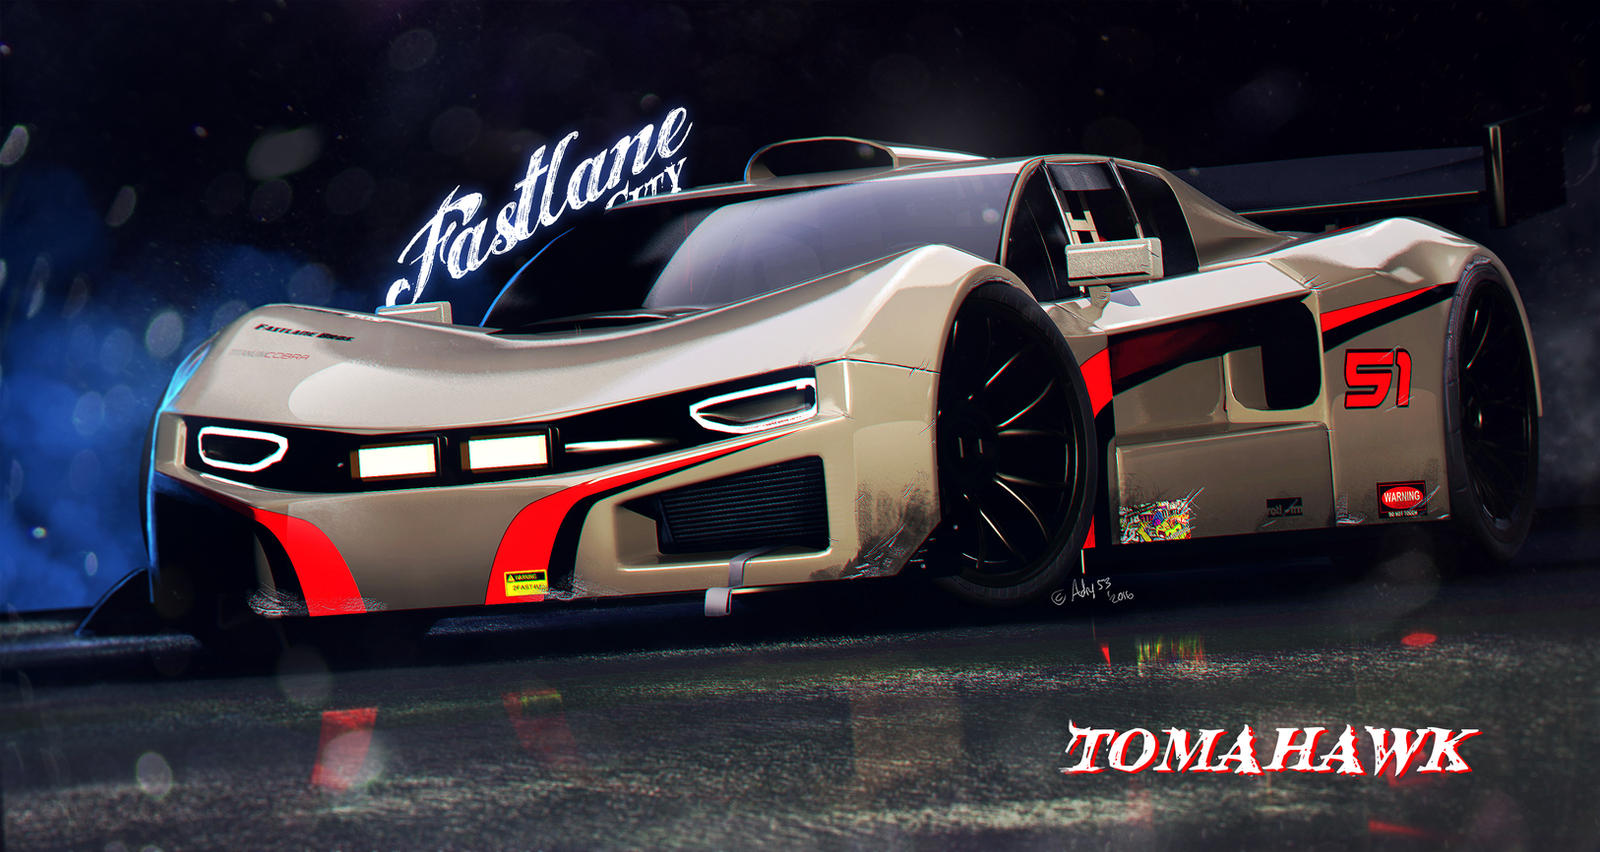 Tomahawk By Adry53 On Deviantart